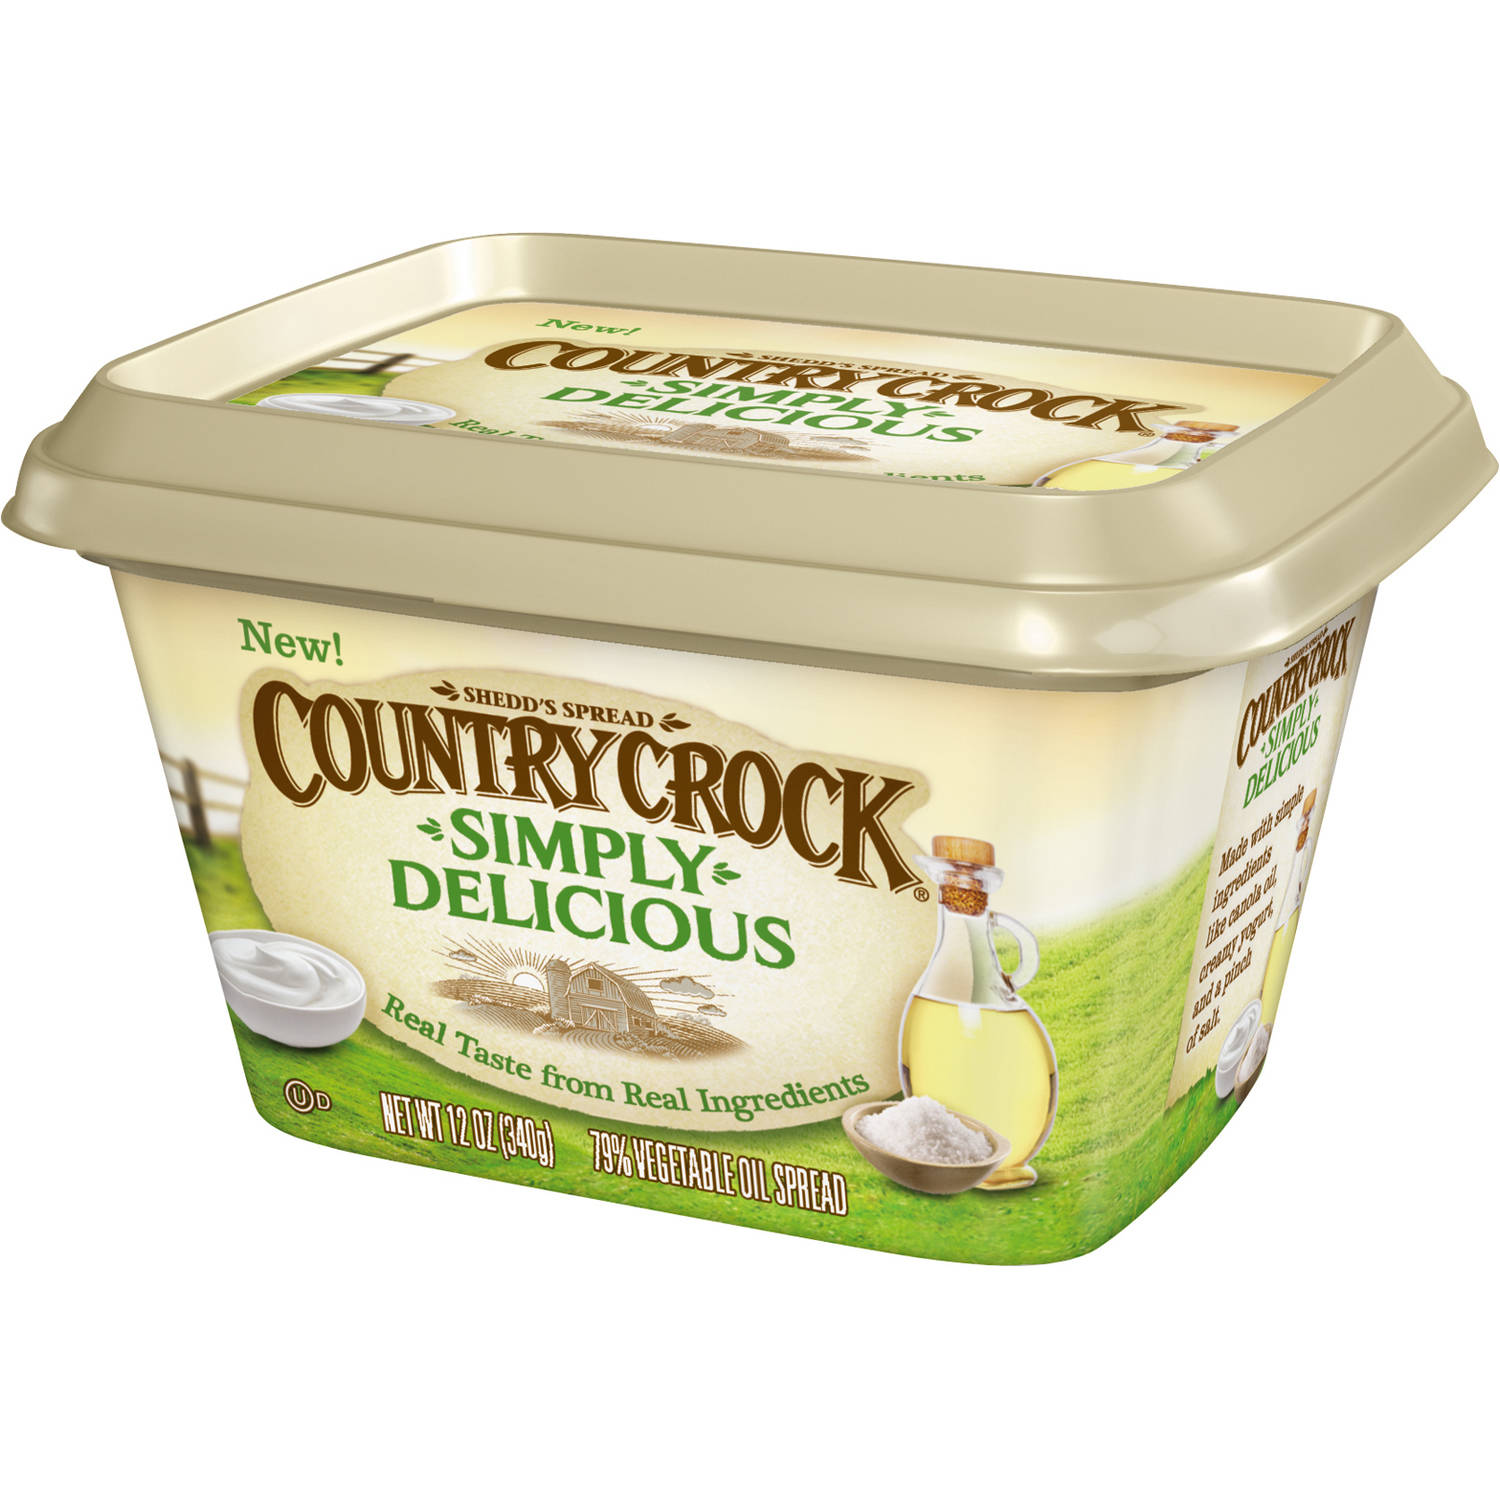 Country Crock Simply Delicious, 79% Vegetable Oil Spread, 12 Oz.